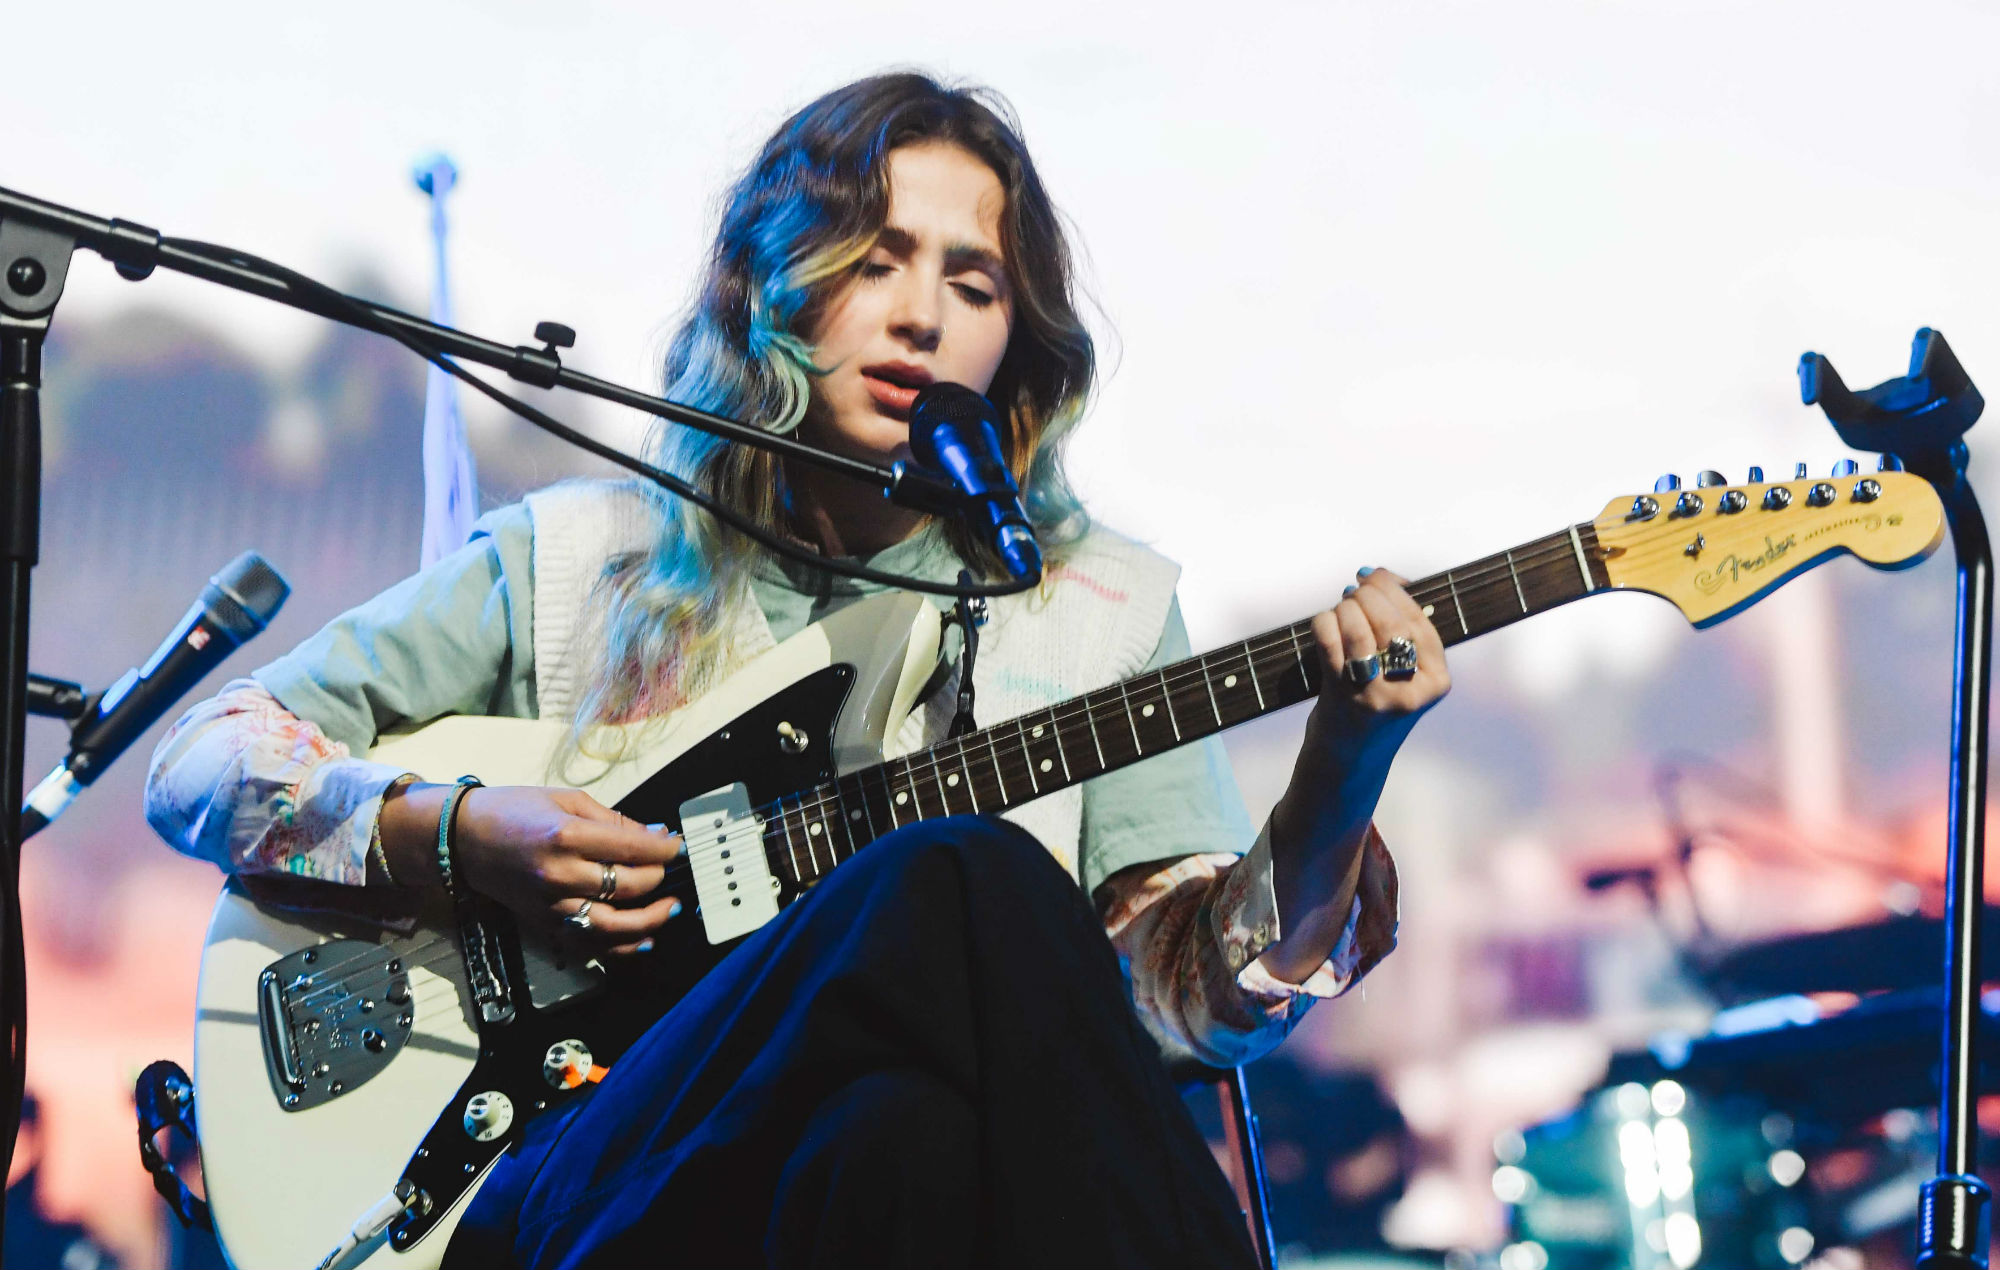 Listen to Clairo's previously unreleased 'Everything I Know' demo